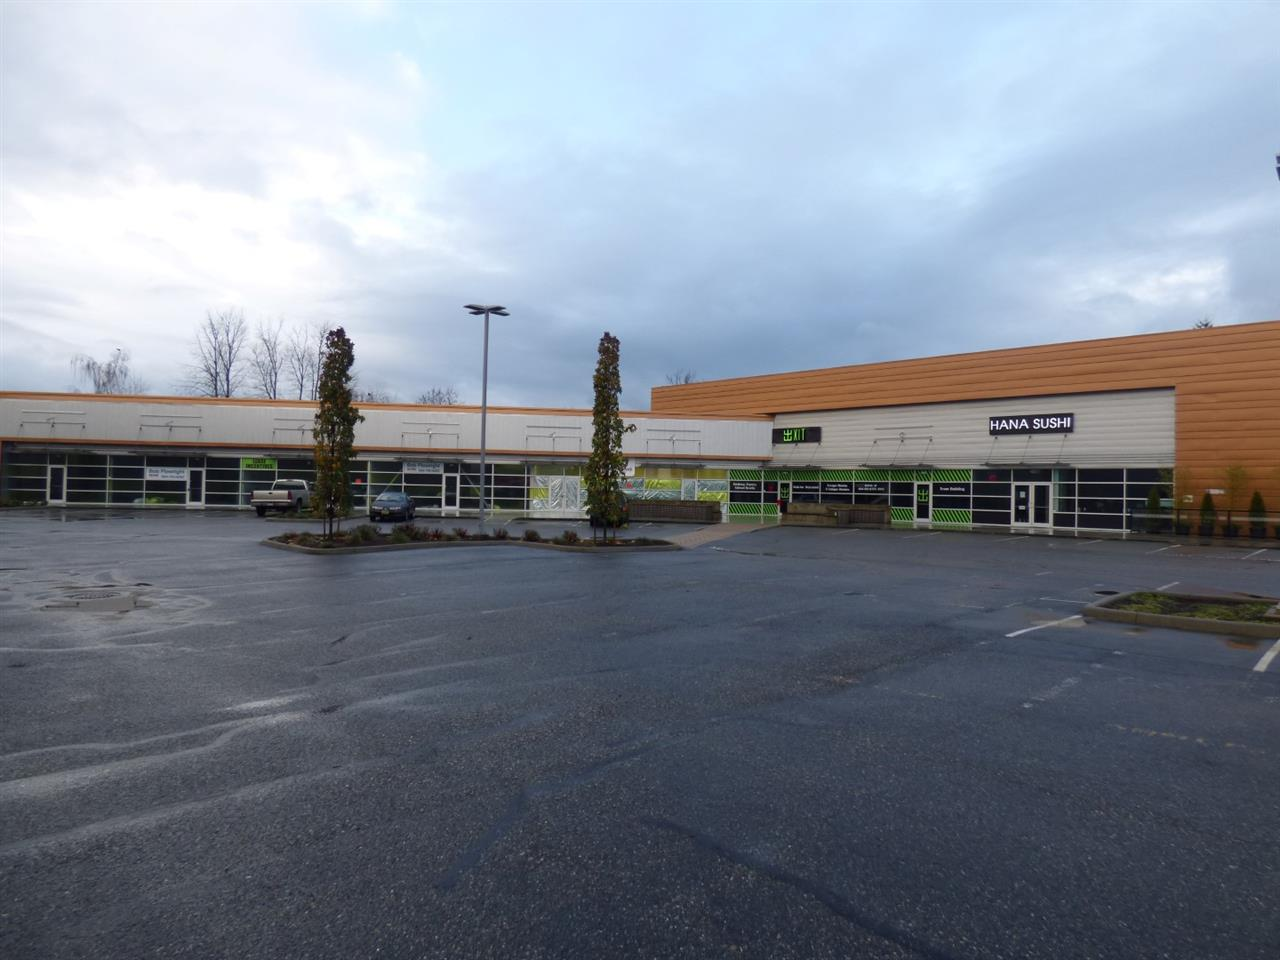 KEY PLAZA! New commercial Service/Retail centre on the main shopping corridor near the Chilliwack Mall & Cottonwood Shopping Centres. Ideal for retail stores, food outlets, insurance agencies, travel consultants, doctors, dental clinics, accountants & much more. Located a 1/2 km from the main entrance to Chilliwack at the Trans Canada HWY 1 interchange. Available now. Unit is roughed in for two washrooms. Ask about incentives &/or allowances for well qualified tenants entering into long term lease arrangements.